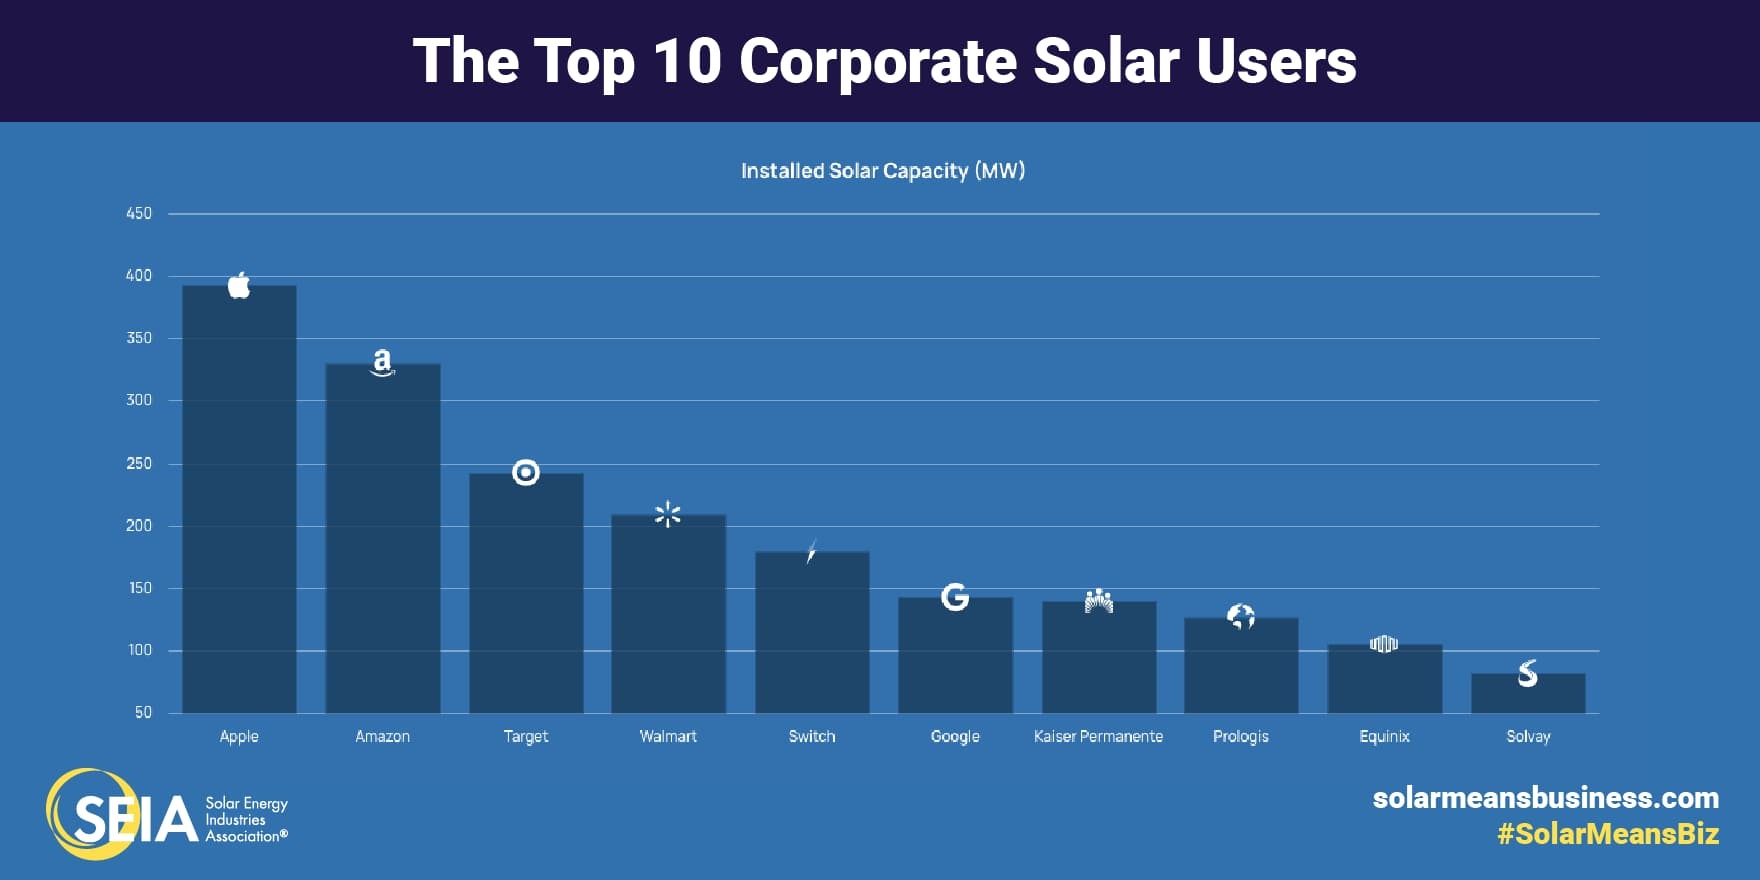 top solar corporate users